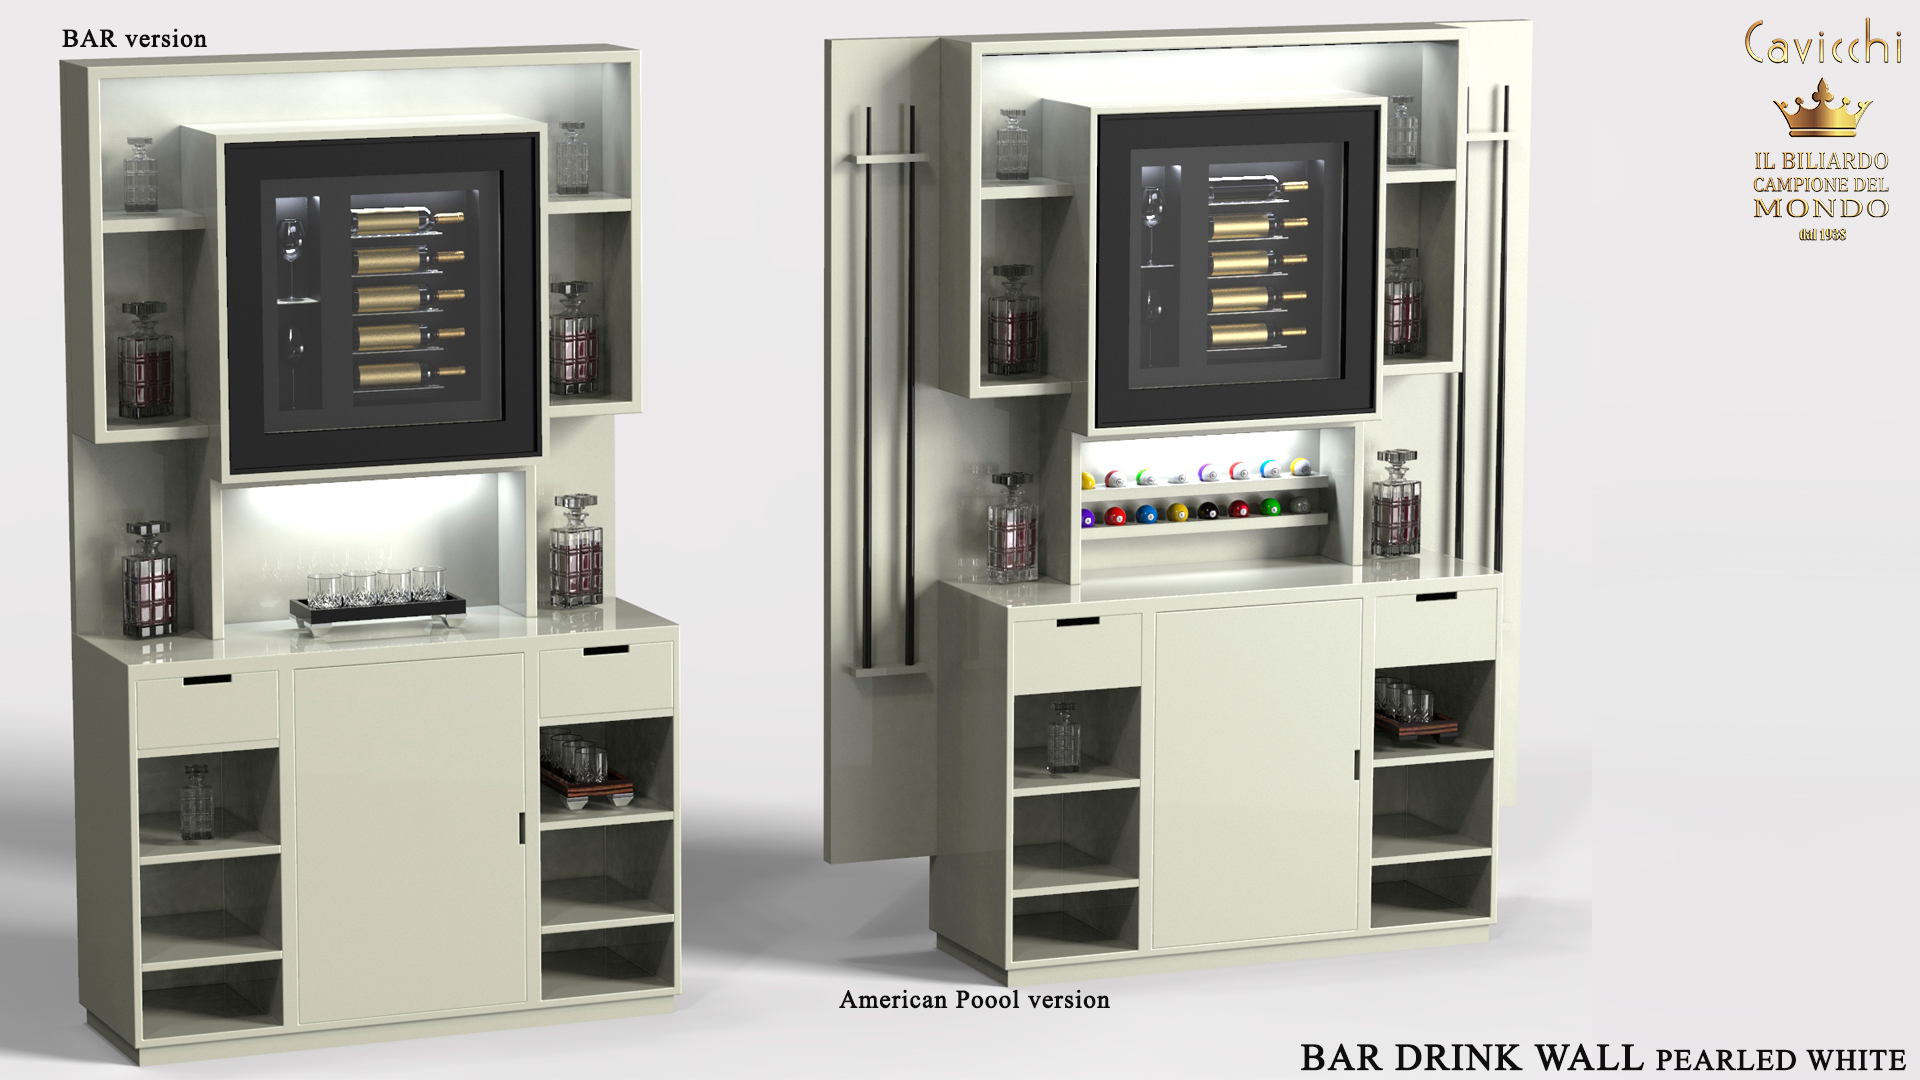 EXCLUSIVE MOBILE BAR DRINK WALL 4